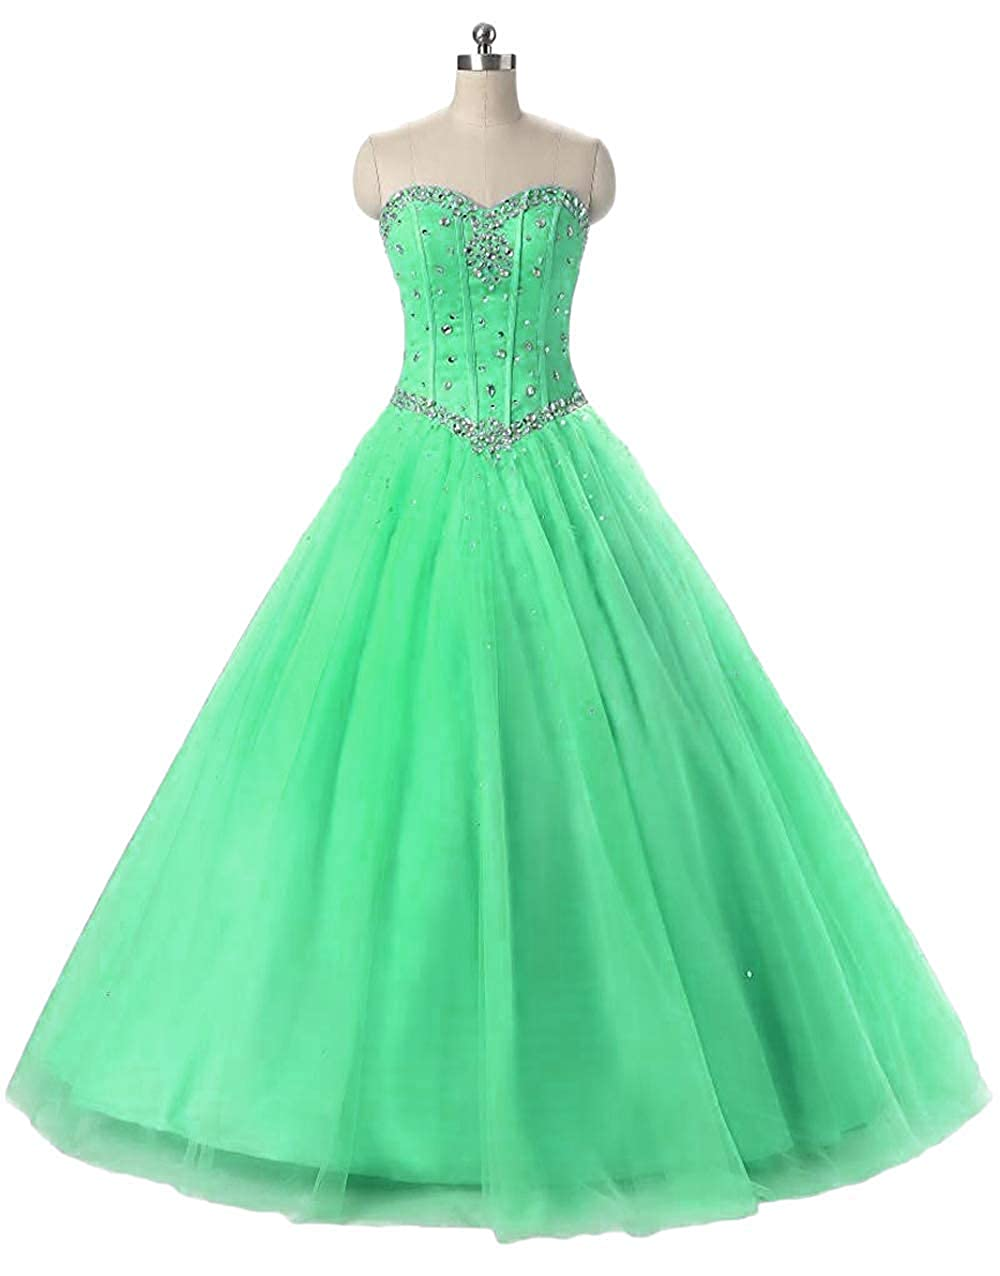 Style Agreen Liaoye Women's Halter Beaded Long Prom Dress Sweet 16 Quinceanera Ball Gown